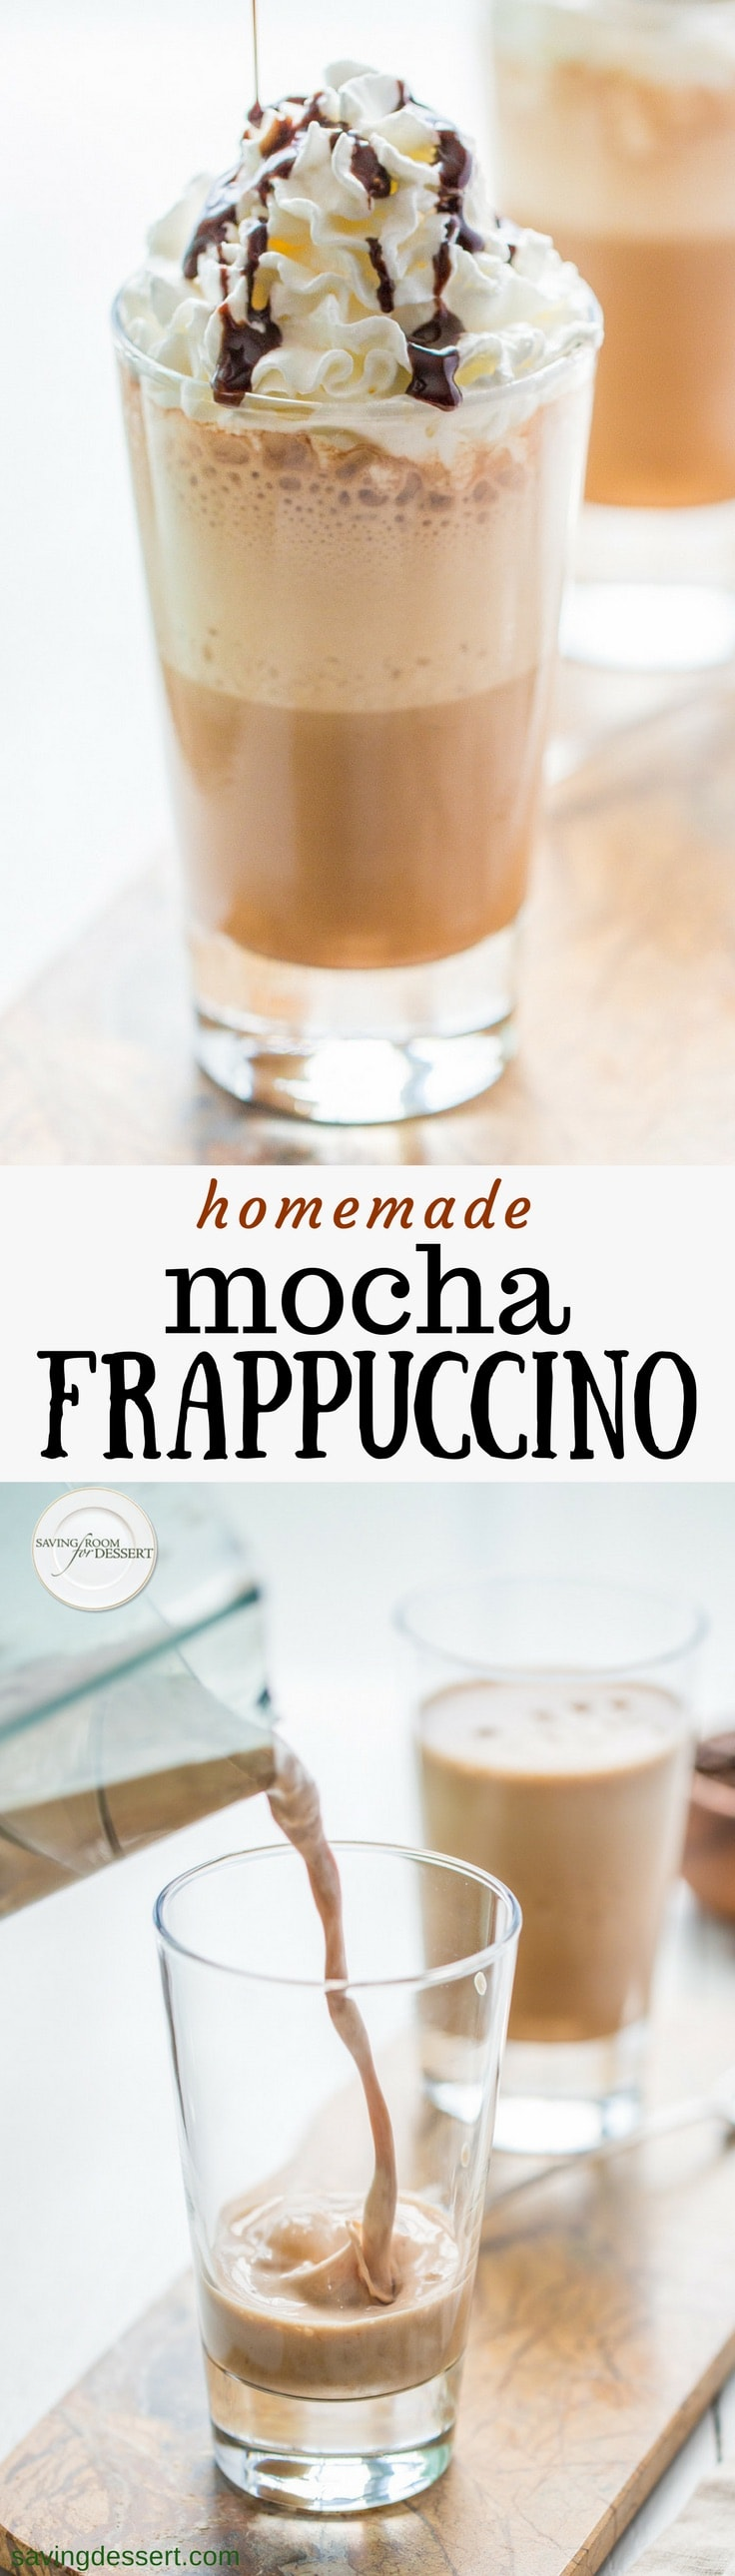 Cool and creamy, Homemade Mocha Frappuccino is a simple summertime treat made with just a